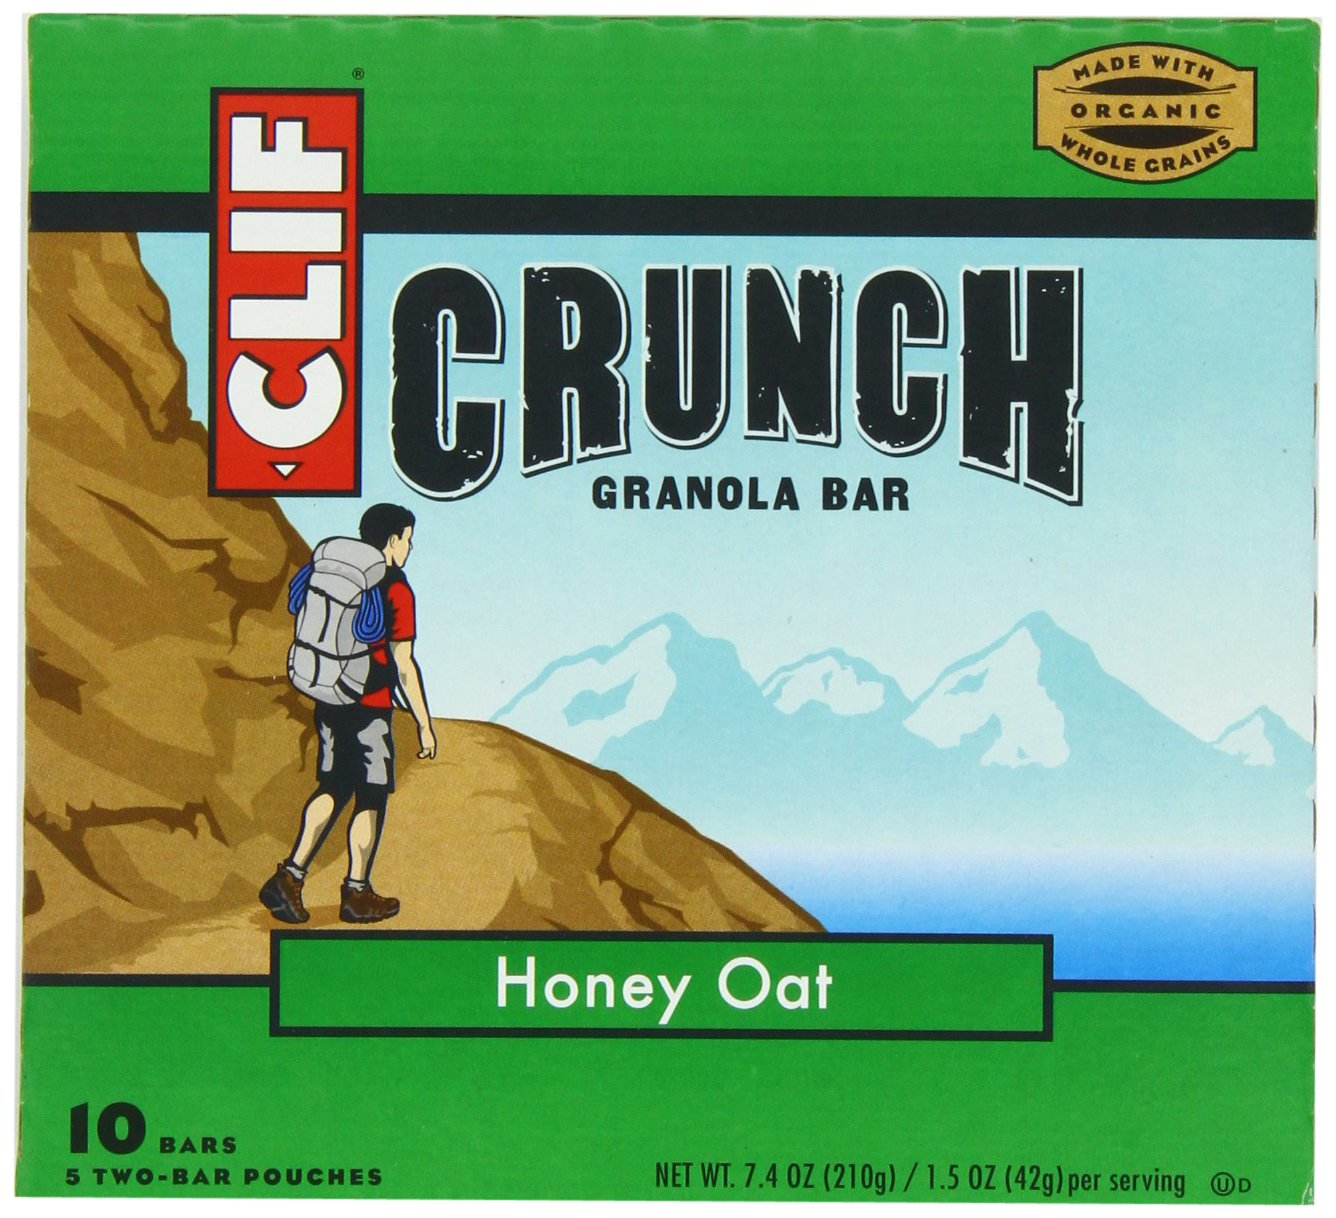 Clif Crunch Granola Bar, Honey Oat, 5 Two-Bar Pouches Net Wt. 7.4 Oz. $3.19